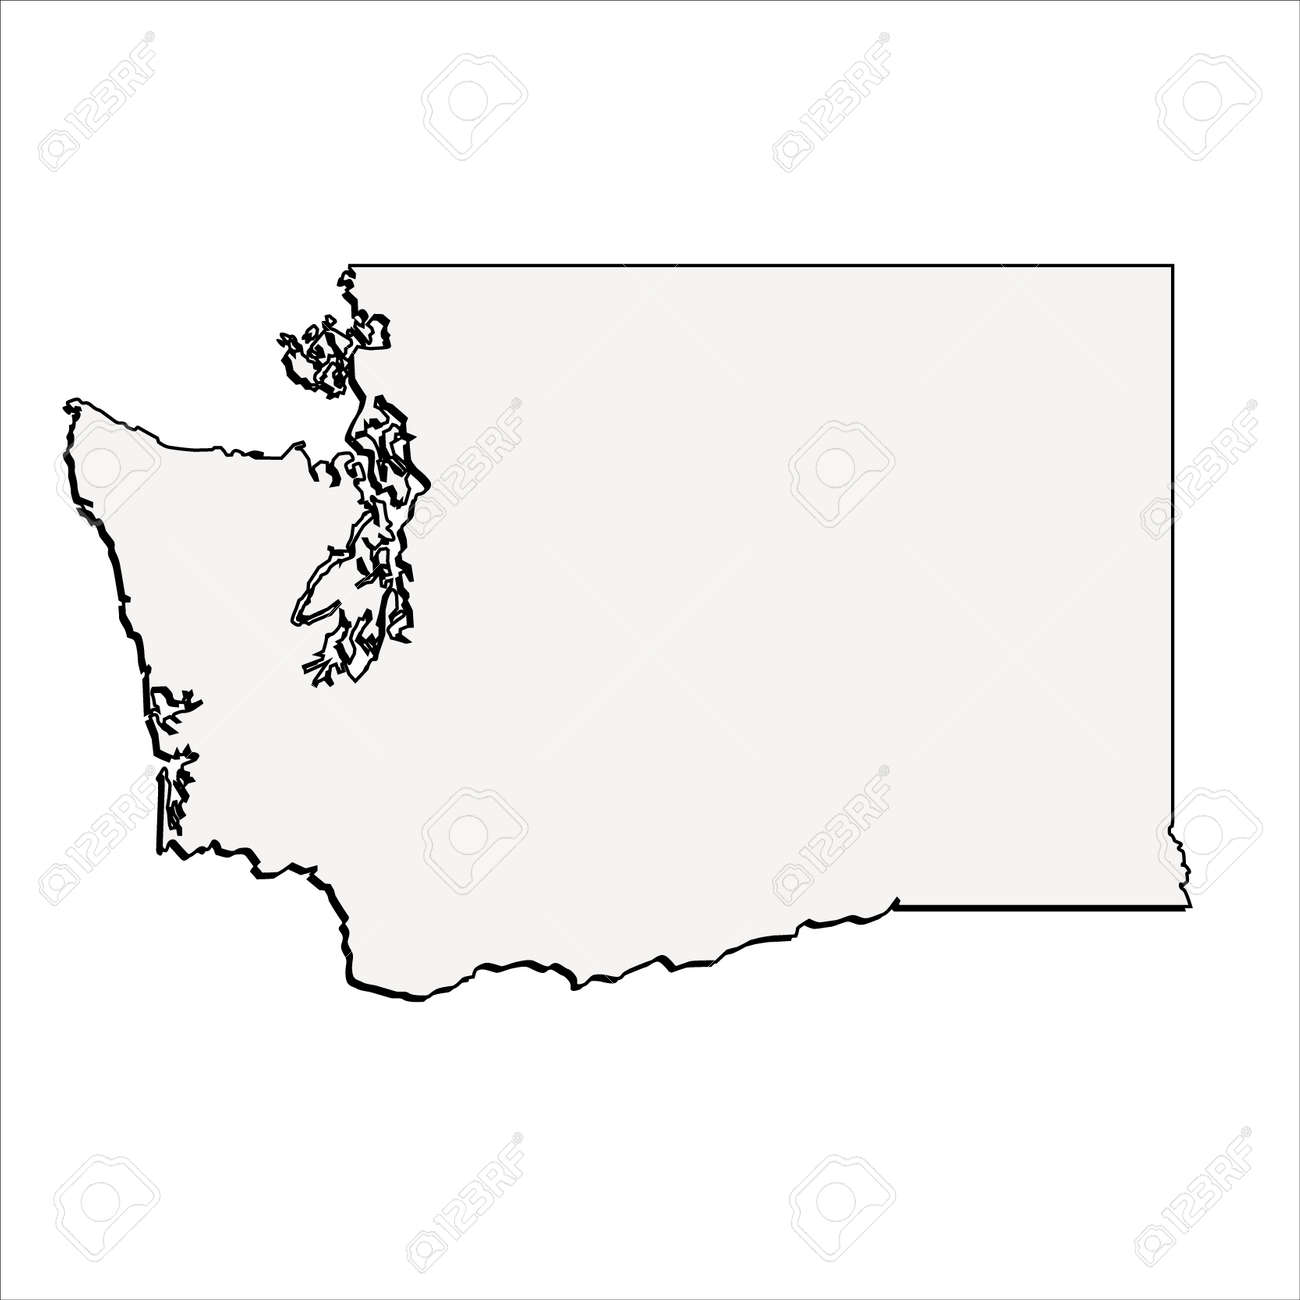 vector washington state 3d outline map royalty free cliparts